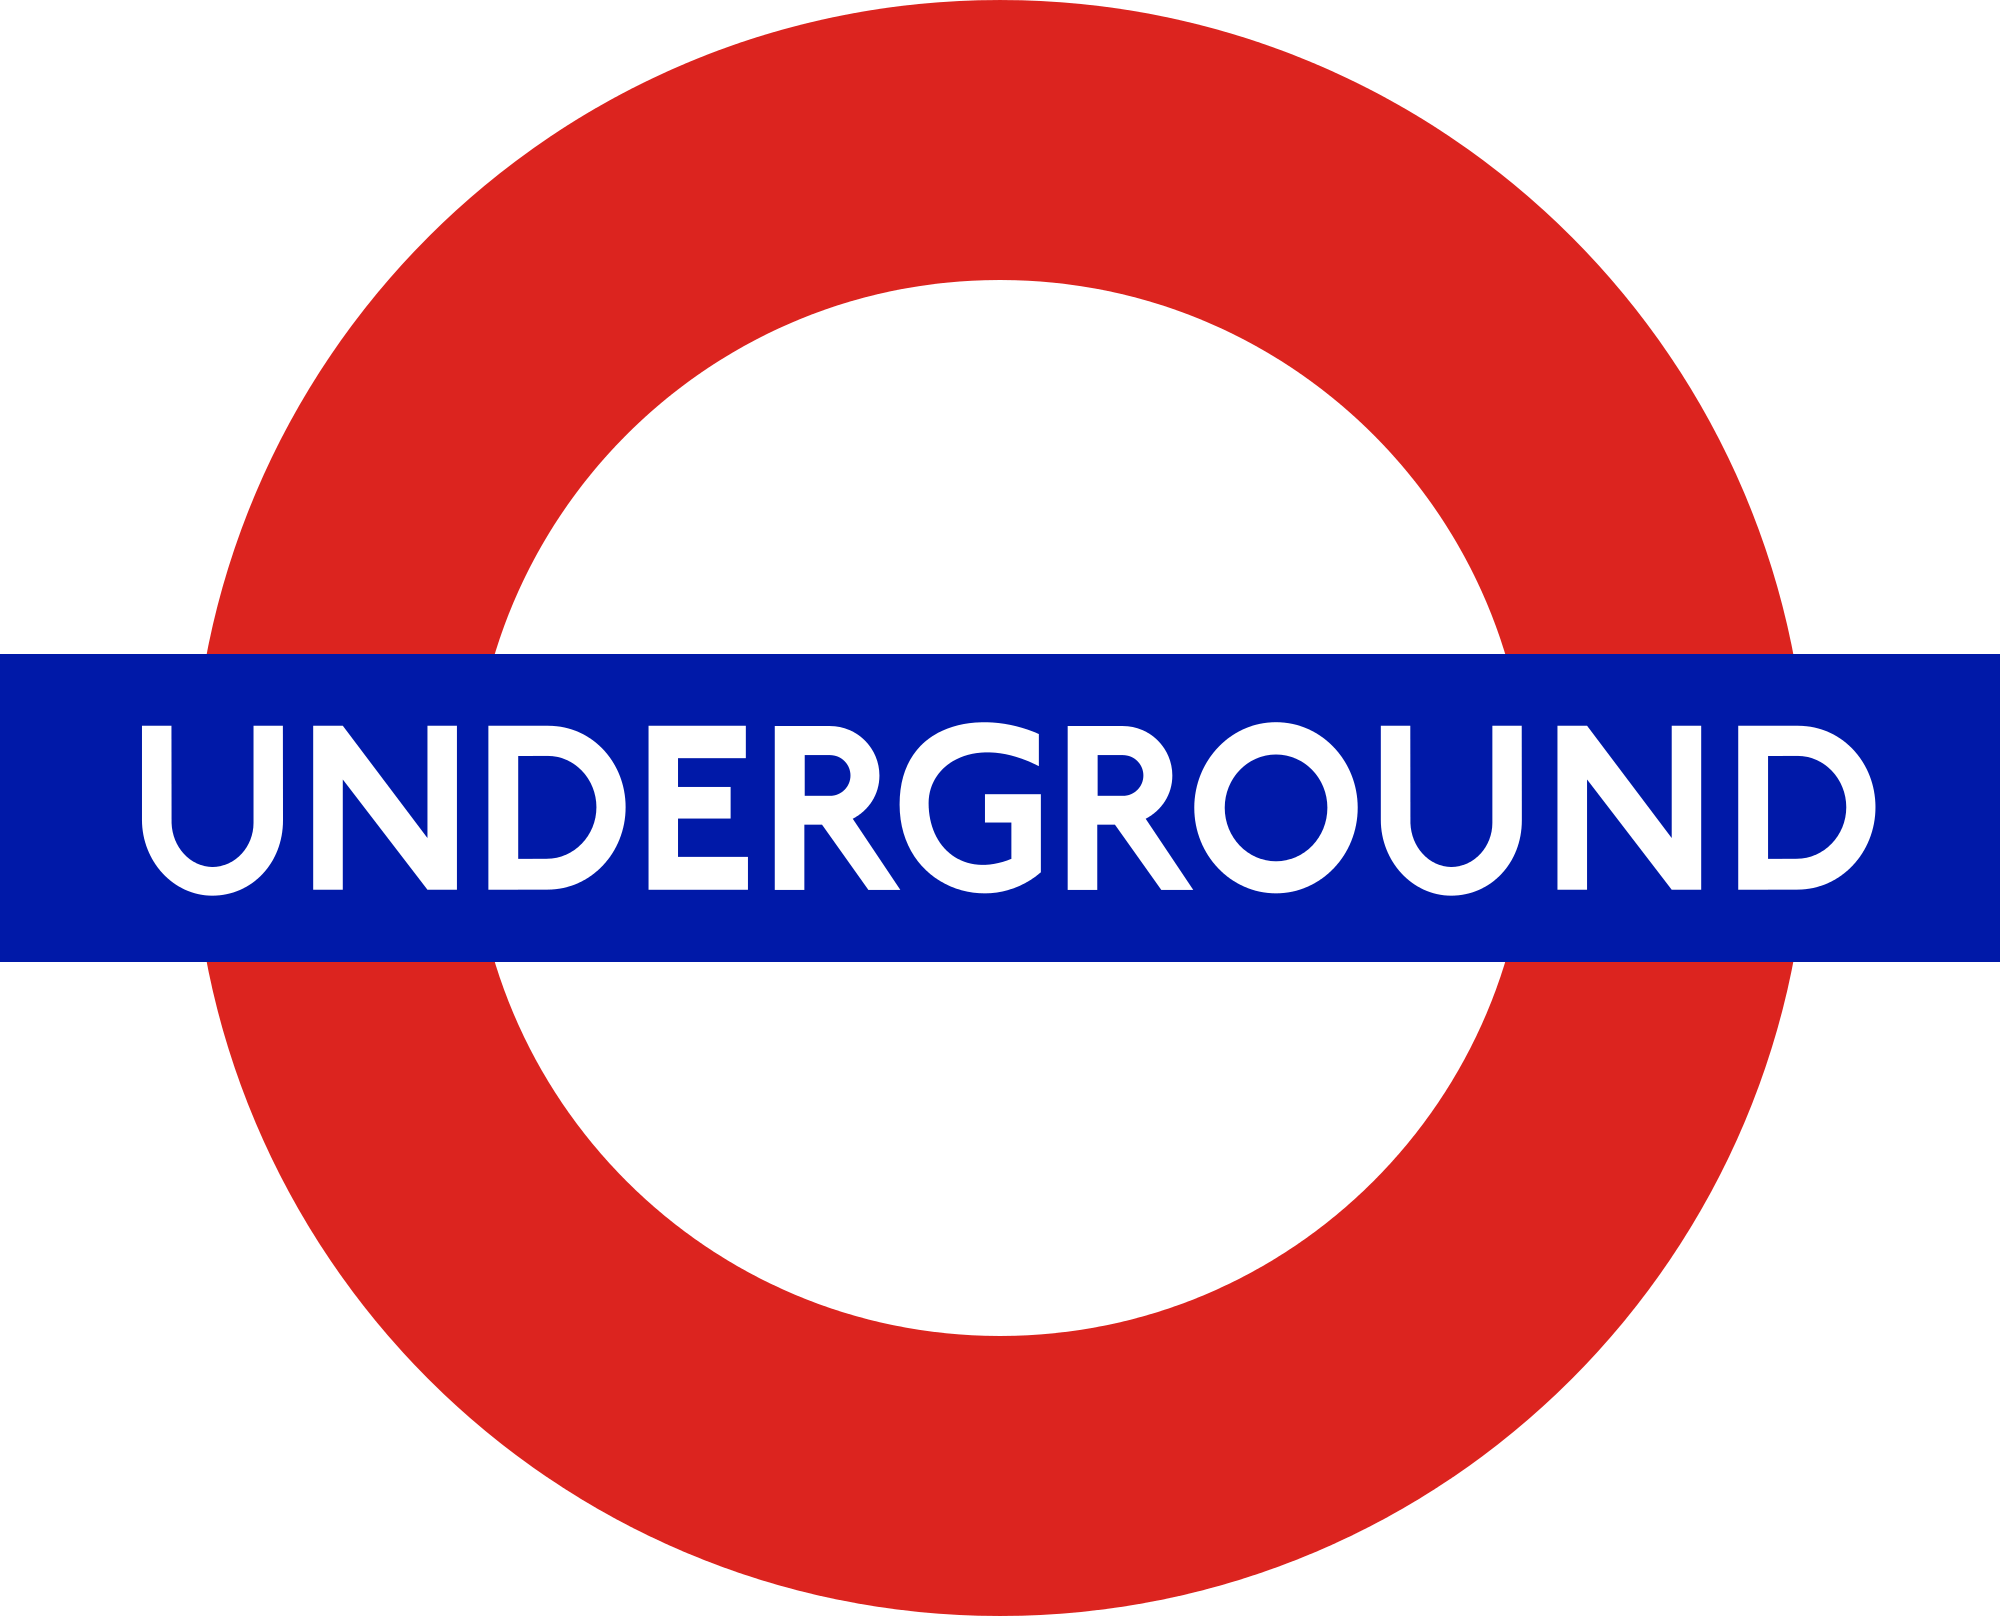 London Tube Logo Underground transparent PNG.